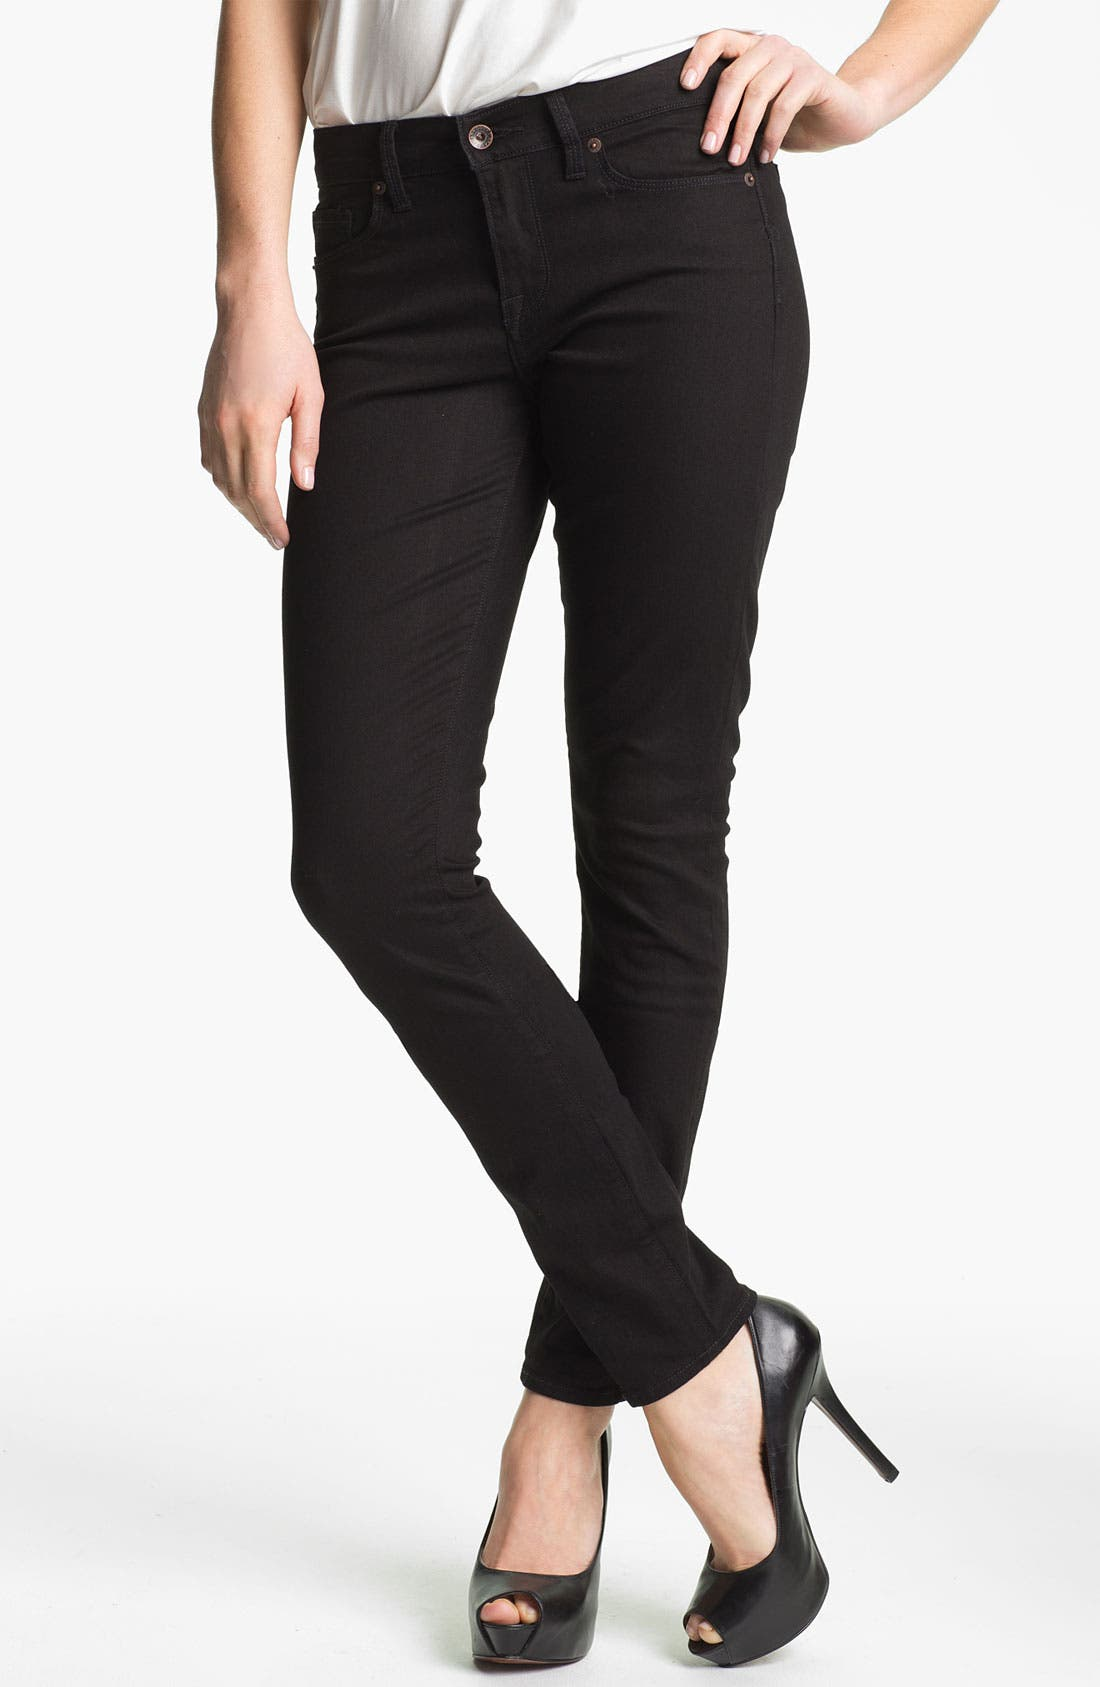 Alternate Image 1 Selected - Lucky Brand 'Sofia' Skinny Jeans (Black) (Online Exclusive)